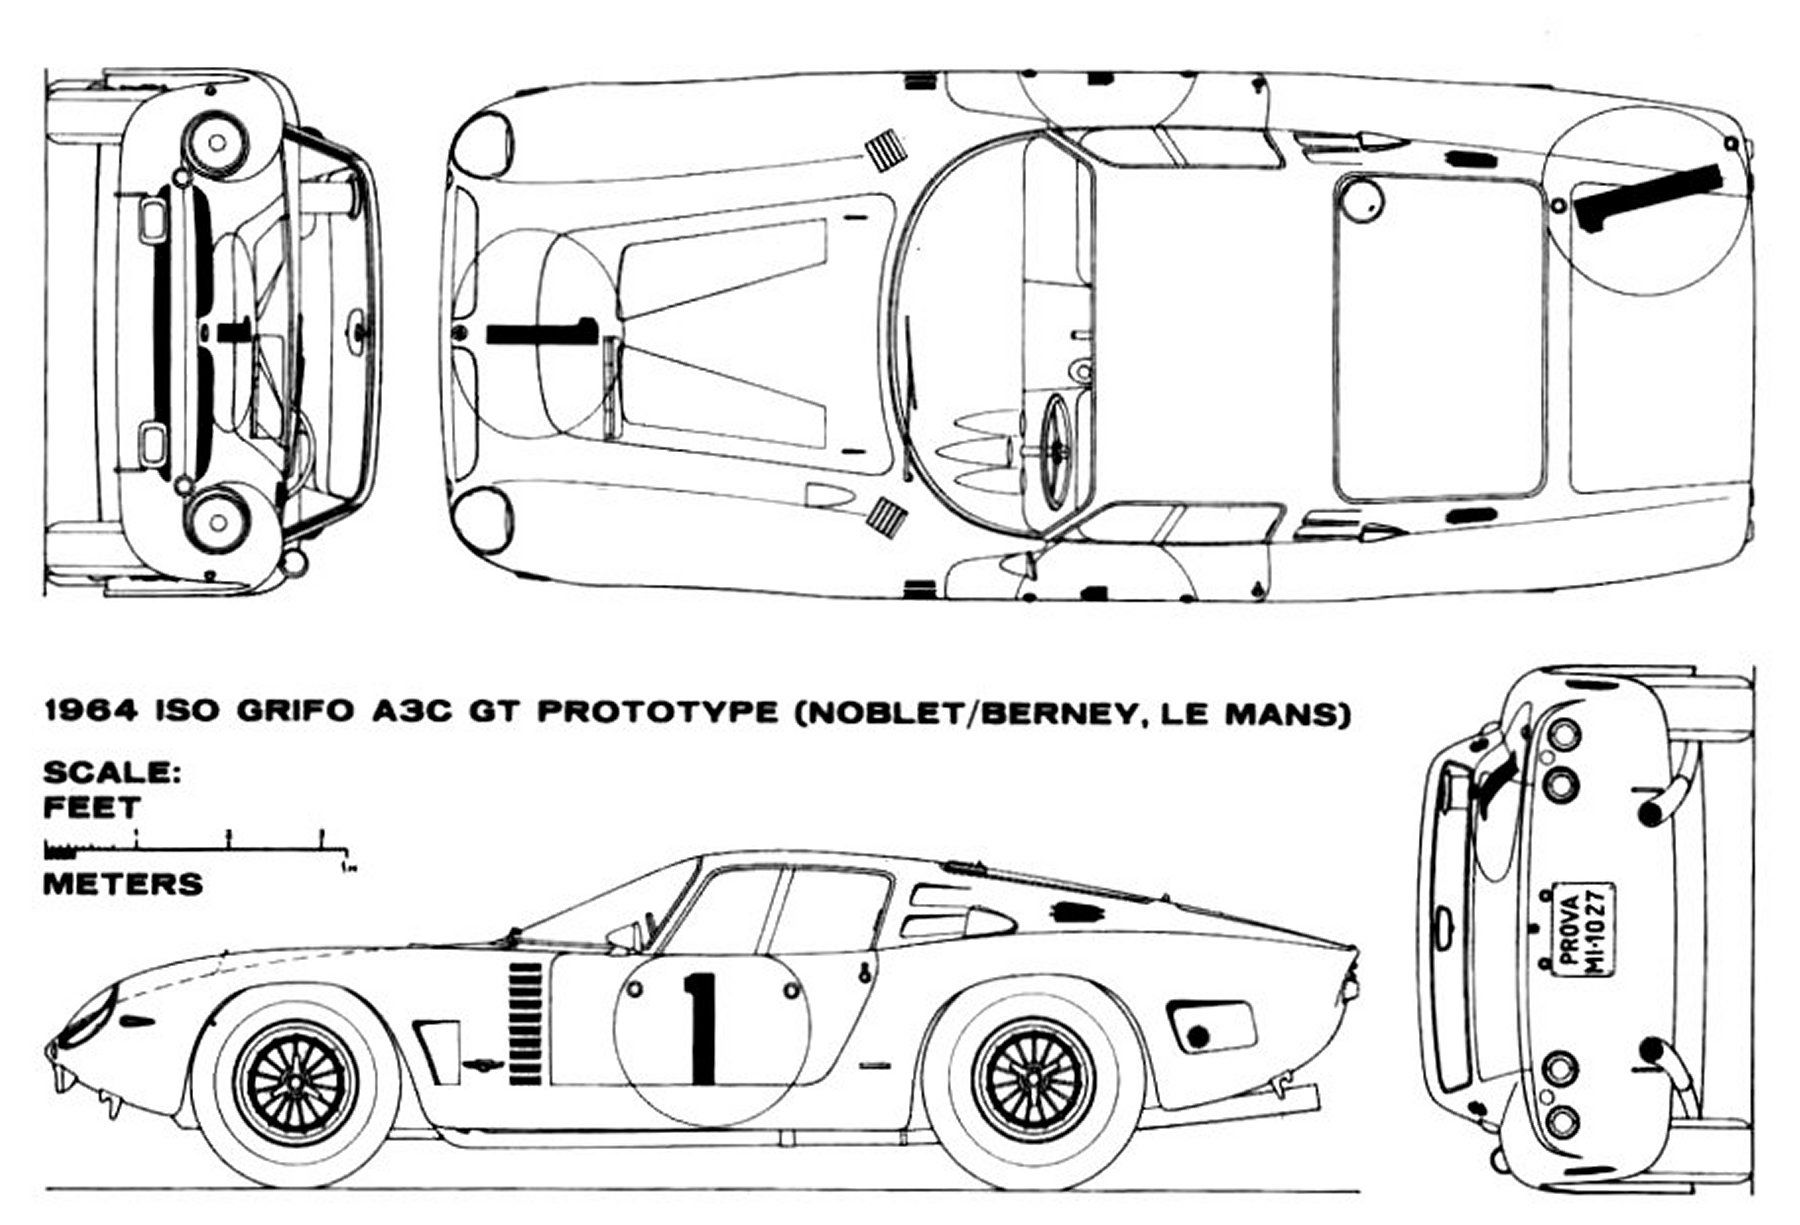 Iso grifo ac3 gt prototype smcars car blueprints forum all net car blueprints forum malvernweather Image collections